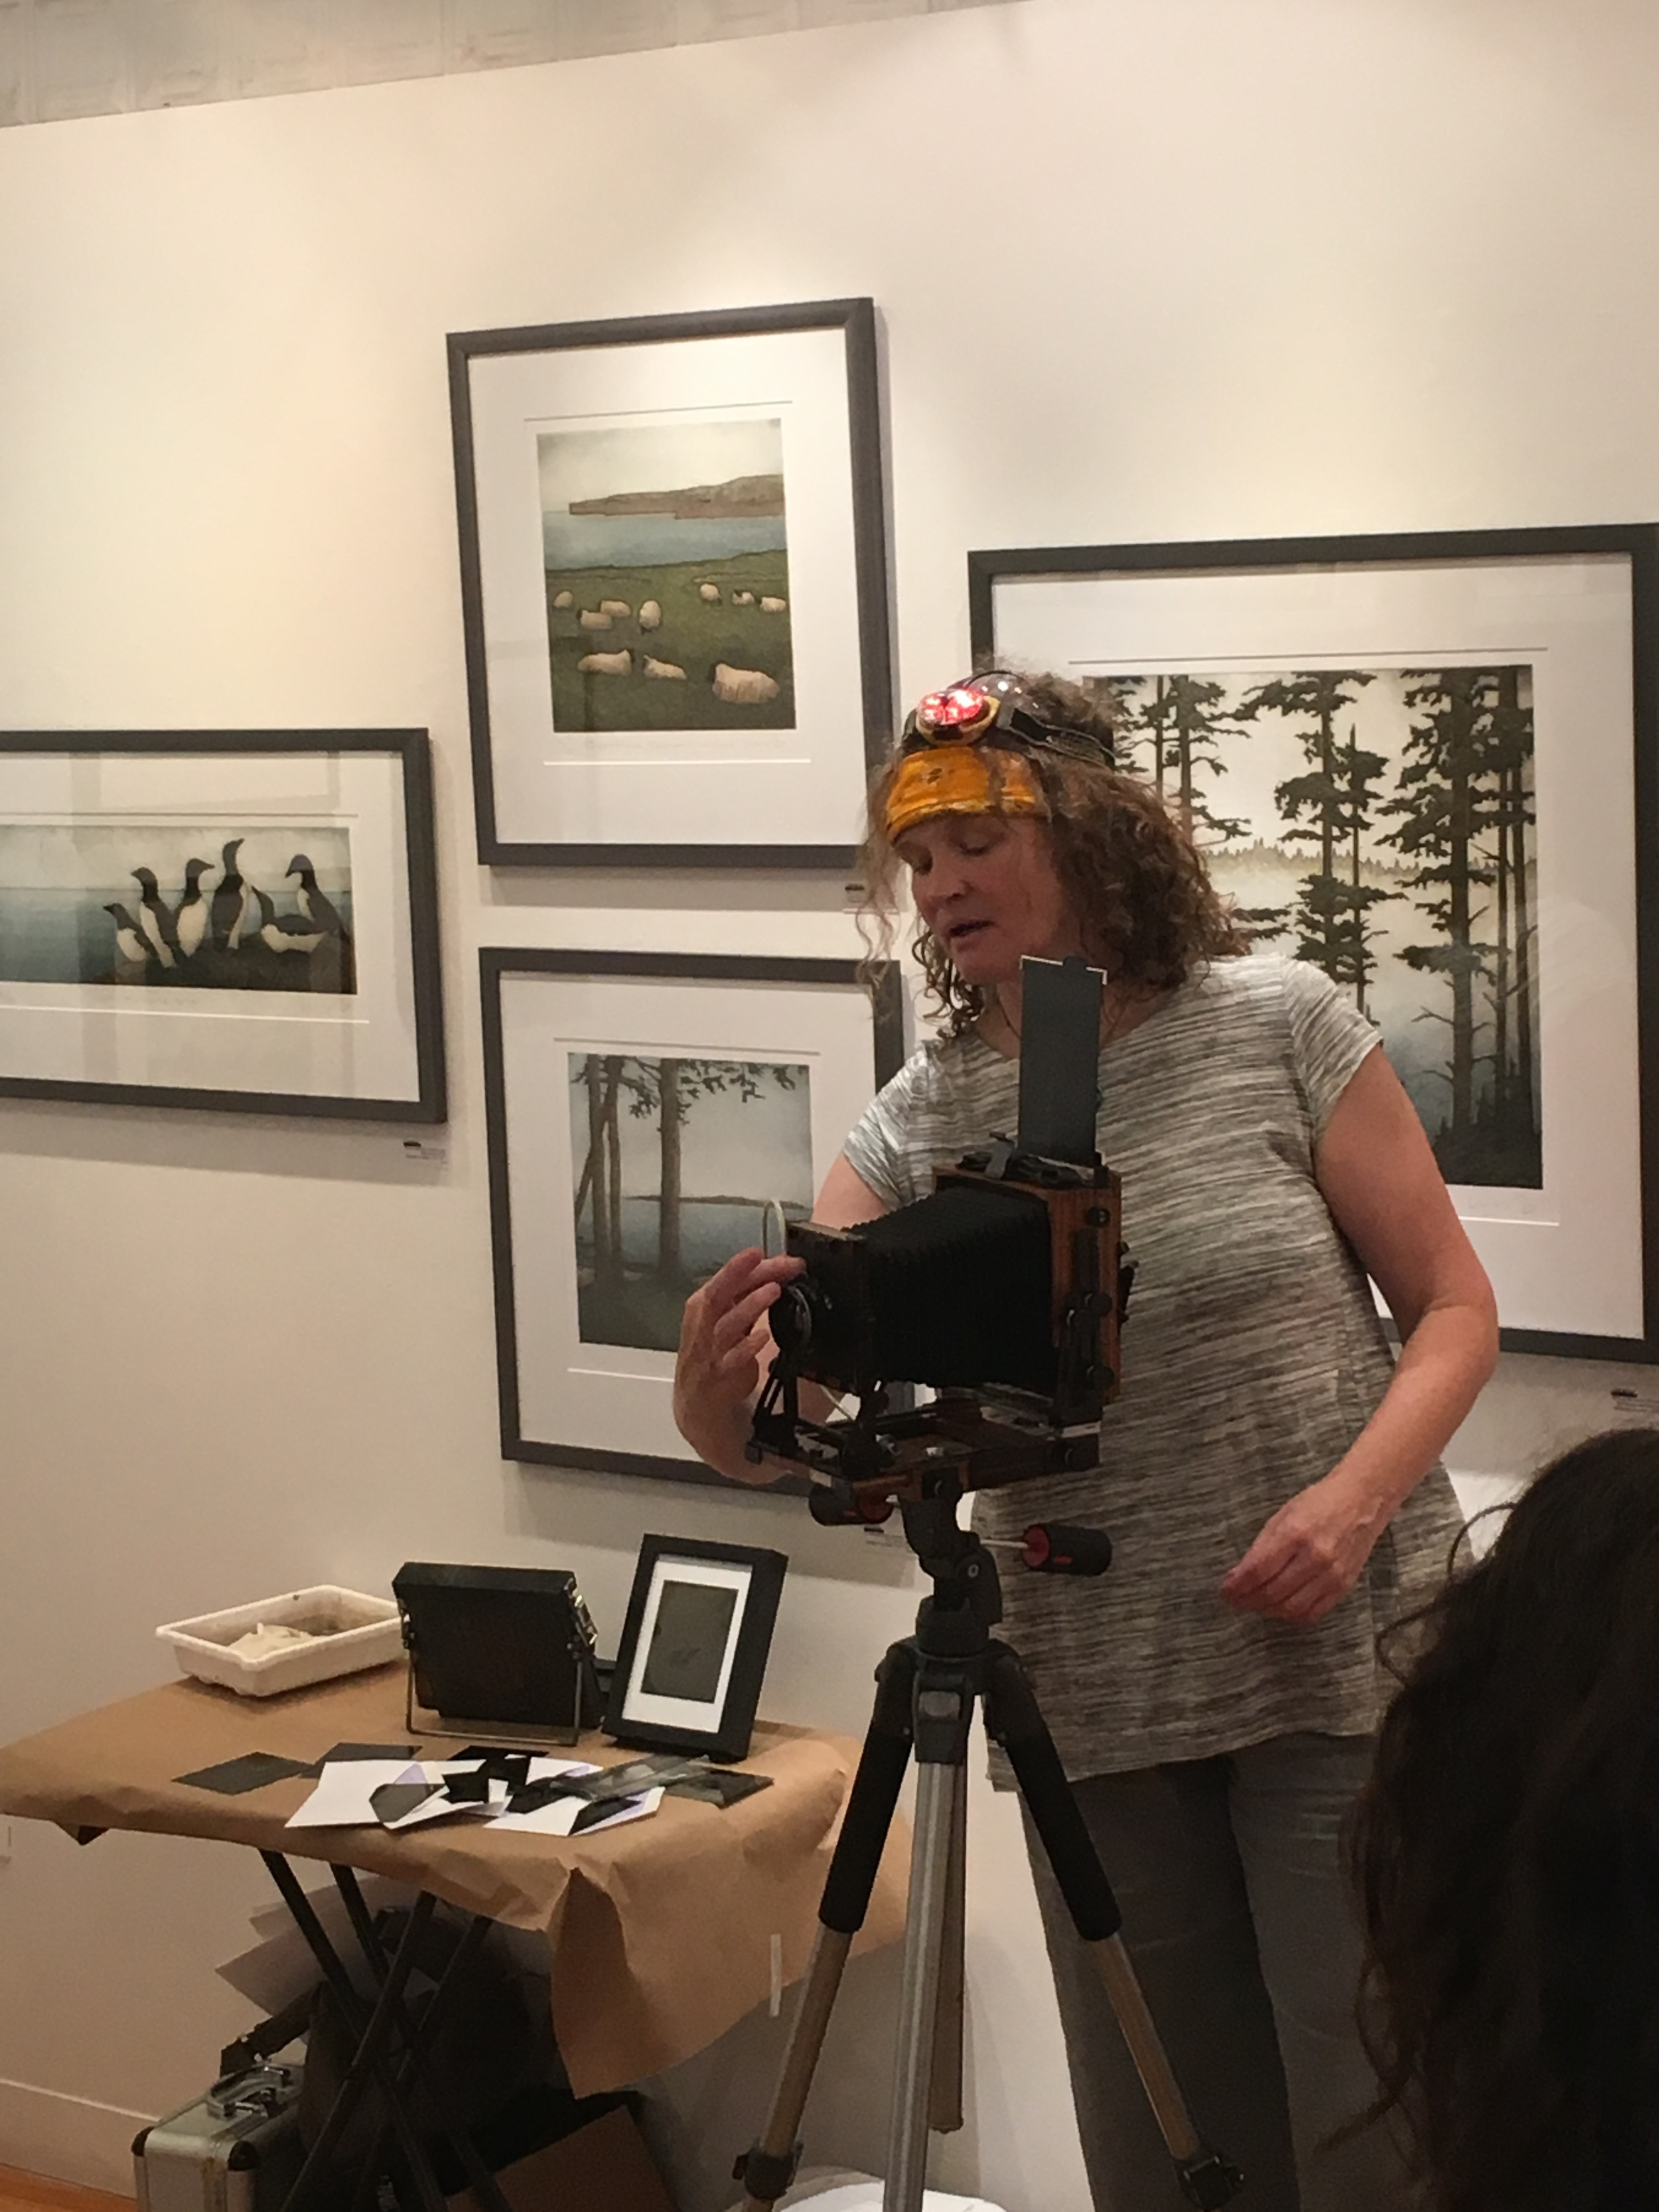 Silke Hase demonstrates various pieces of equipment used in the wet plate collodion process.